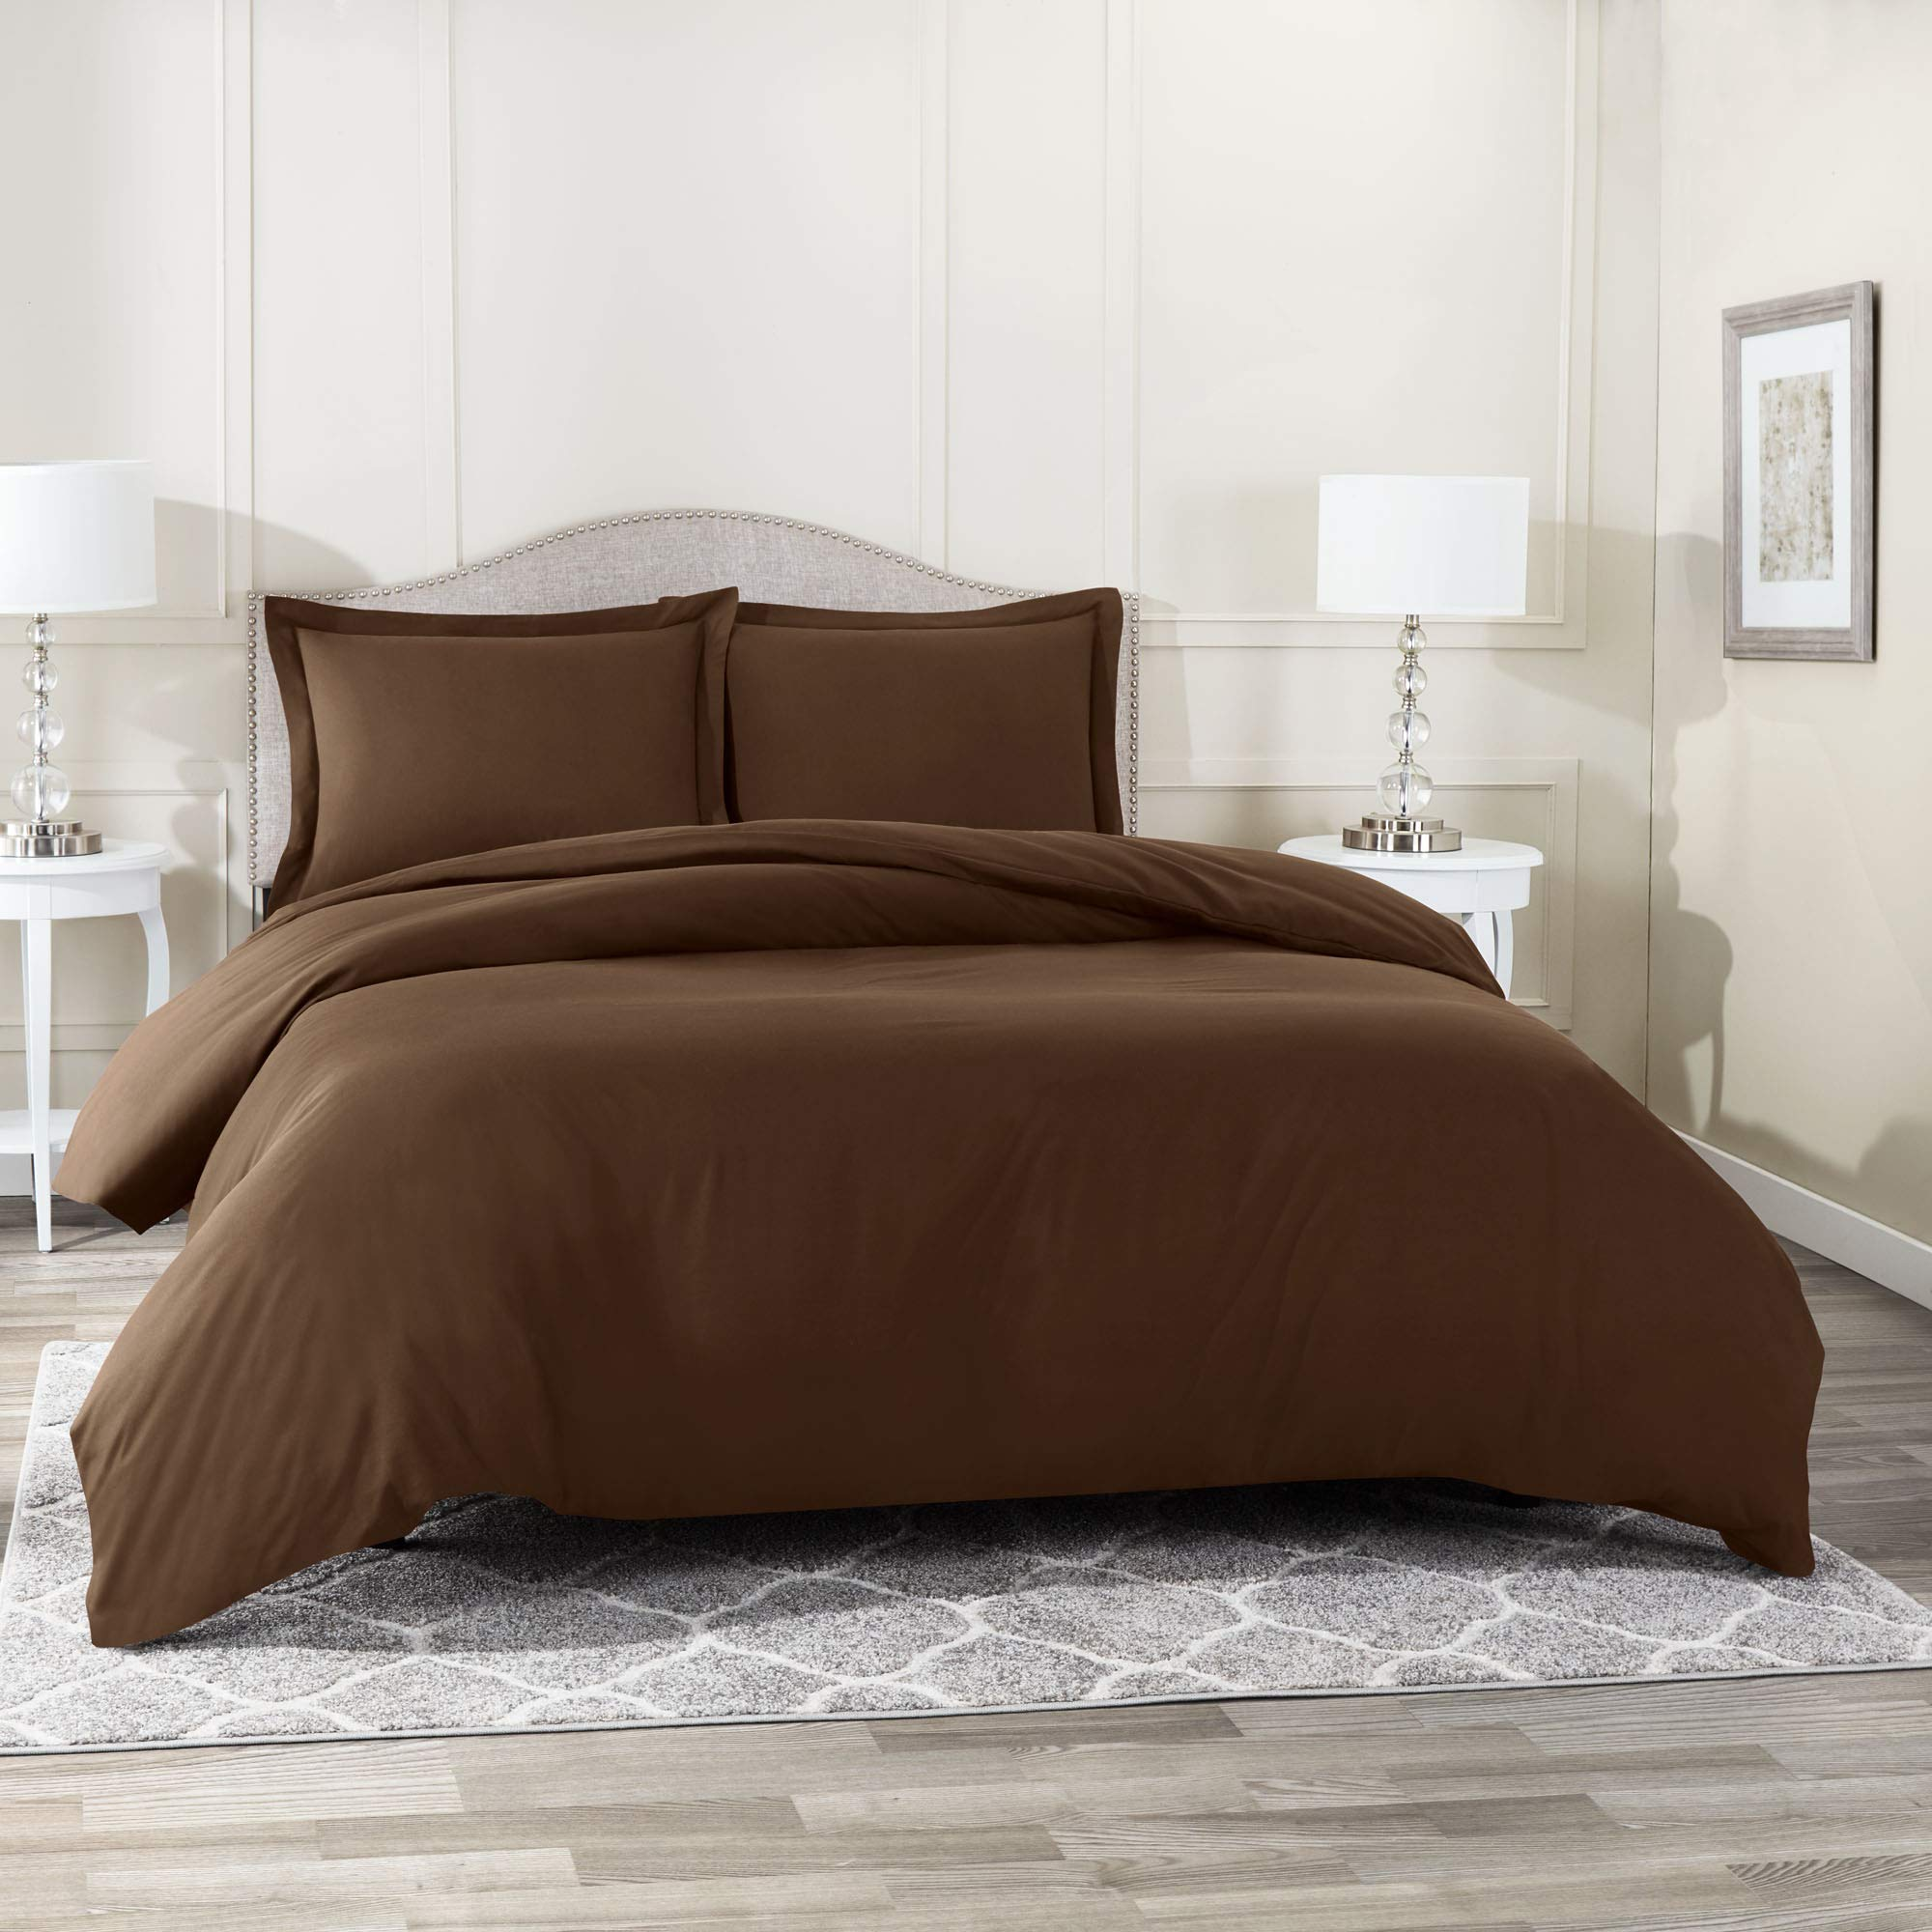 Nestl Bedding Duvet Cover with Fitted Sheet 4 Piece Set - Soft Double Brushed Microfiber Hotel Collection - Comforter Cover with Button Closure, Fitted Sheet, 2 Pillow Shams, Queen - Chocolate Brown